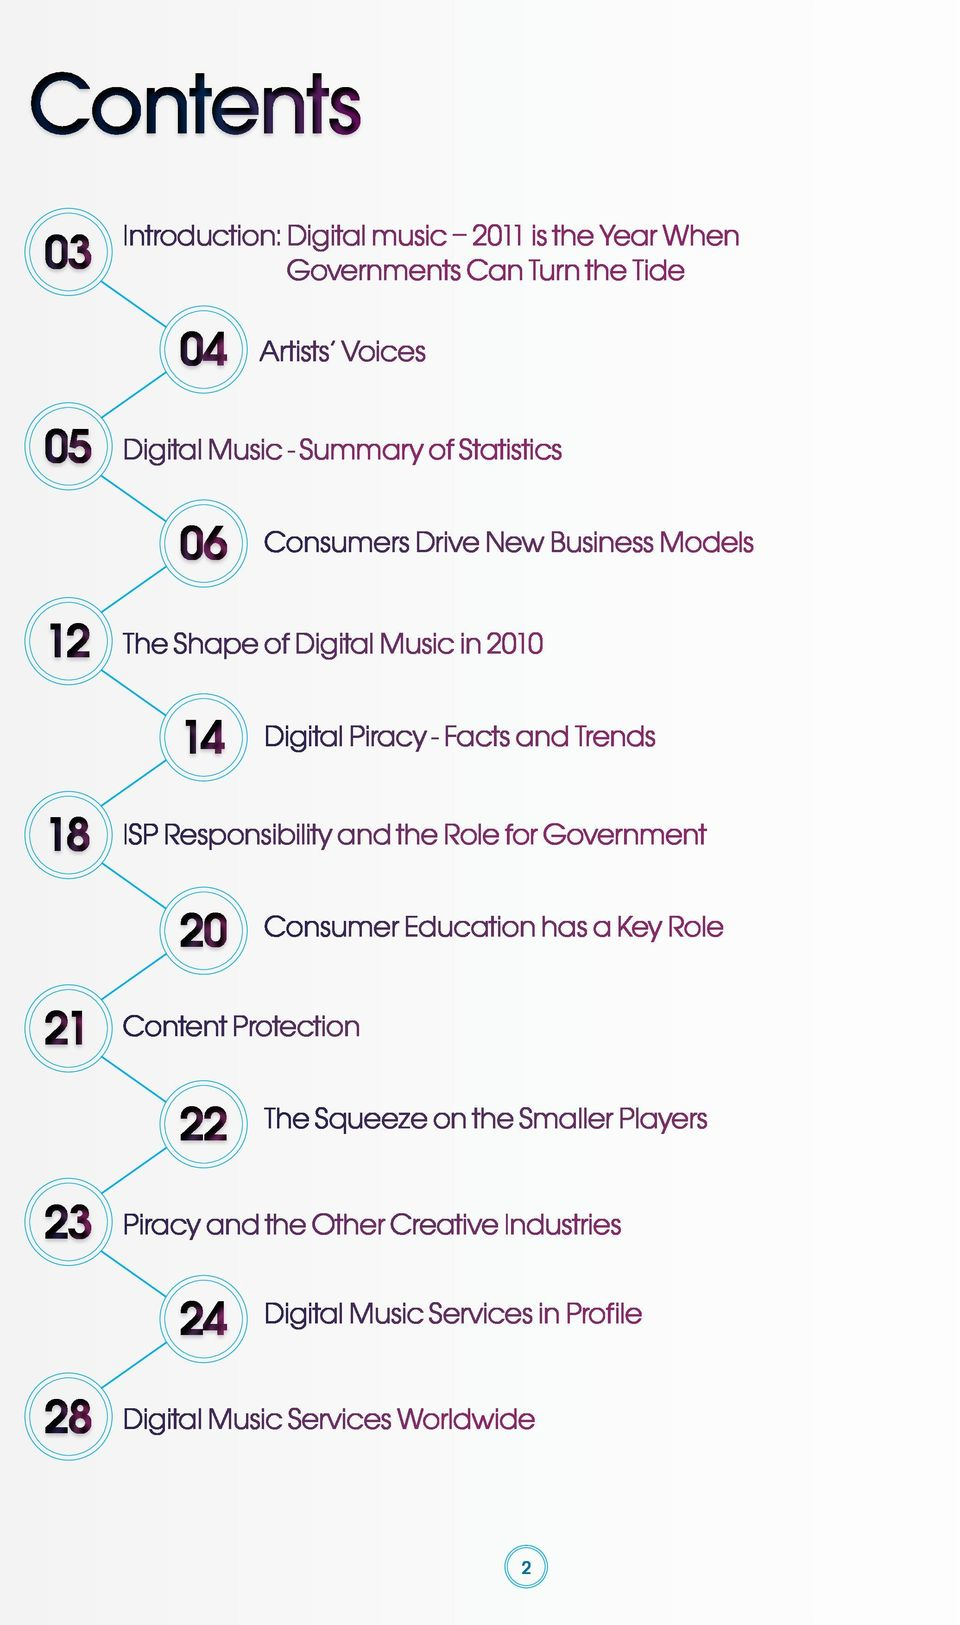 Trends 18 ISP Responsibility and the Role for Government 20 Consumer Education has a Key Role 21 Content Protection 22 The Squeeze